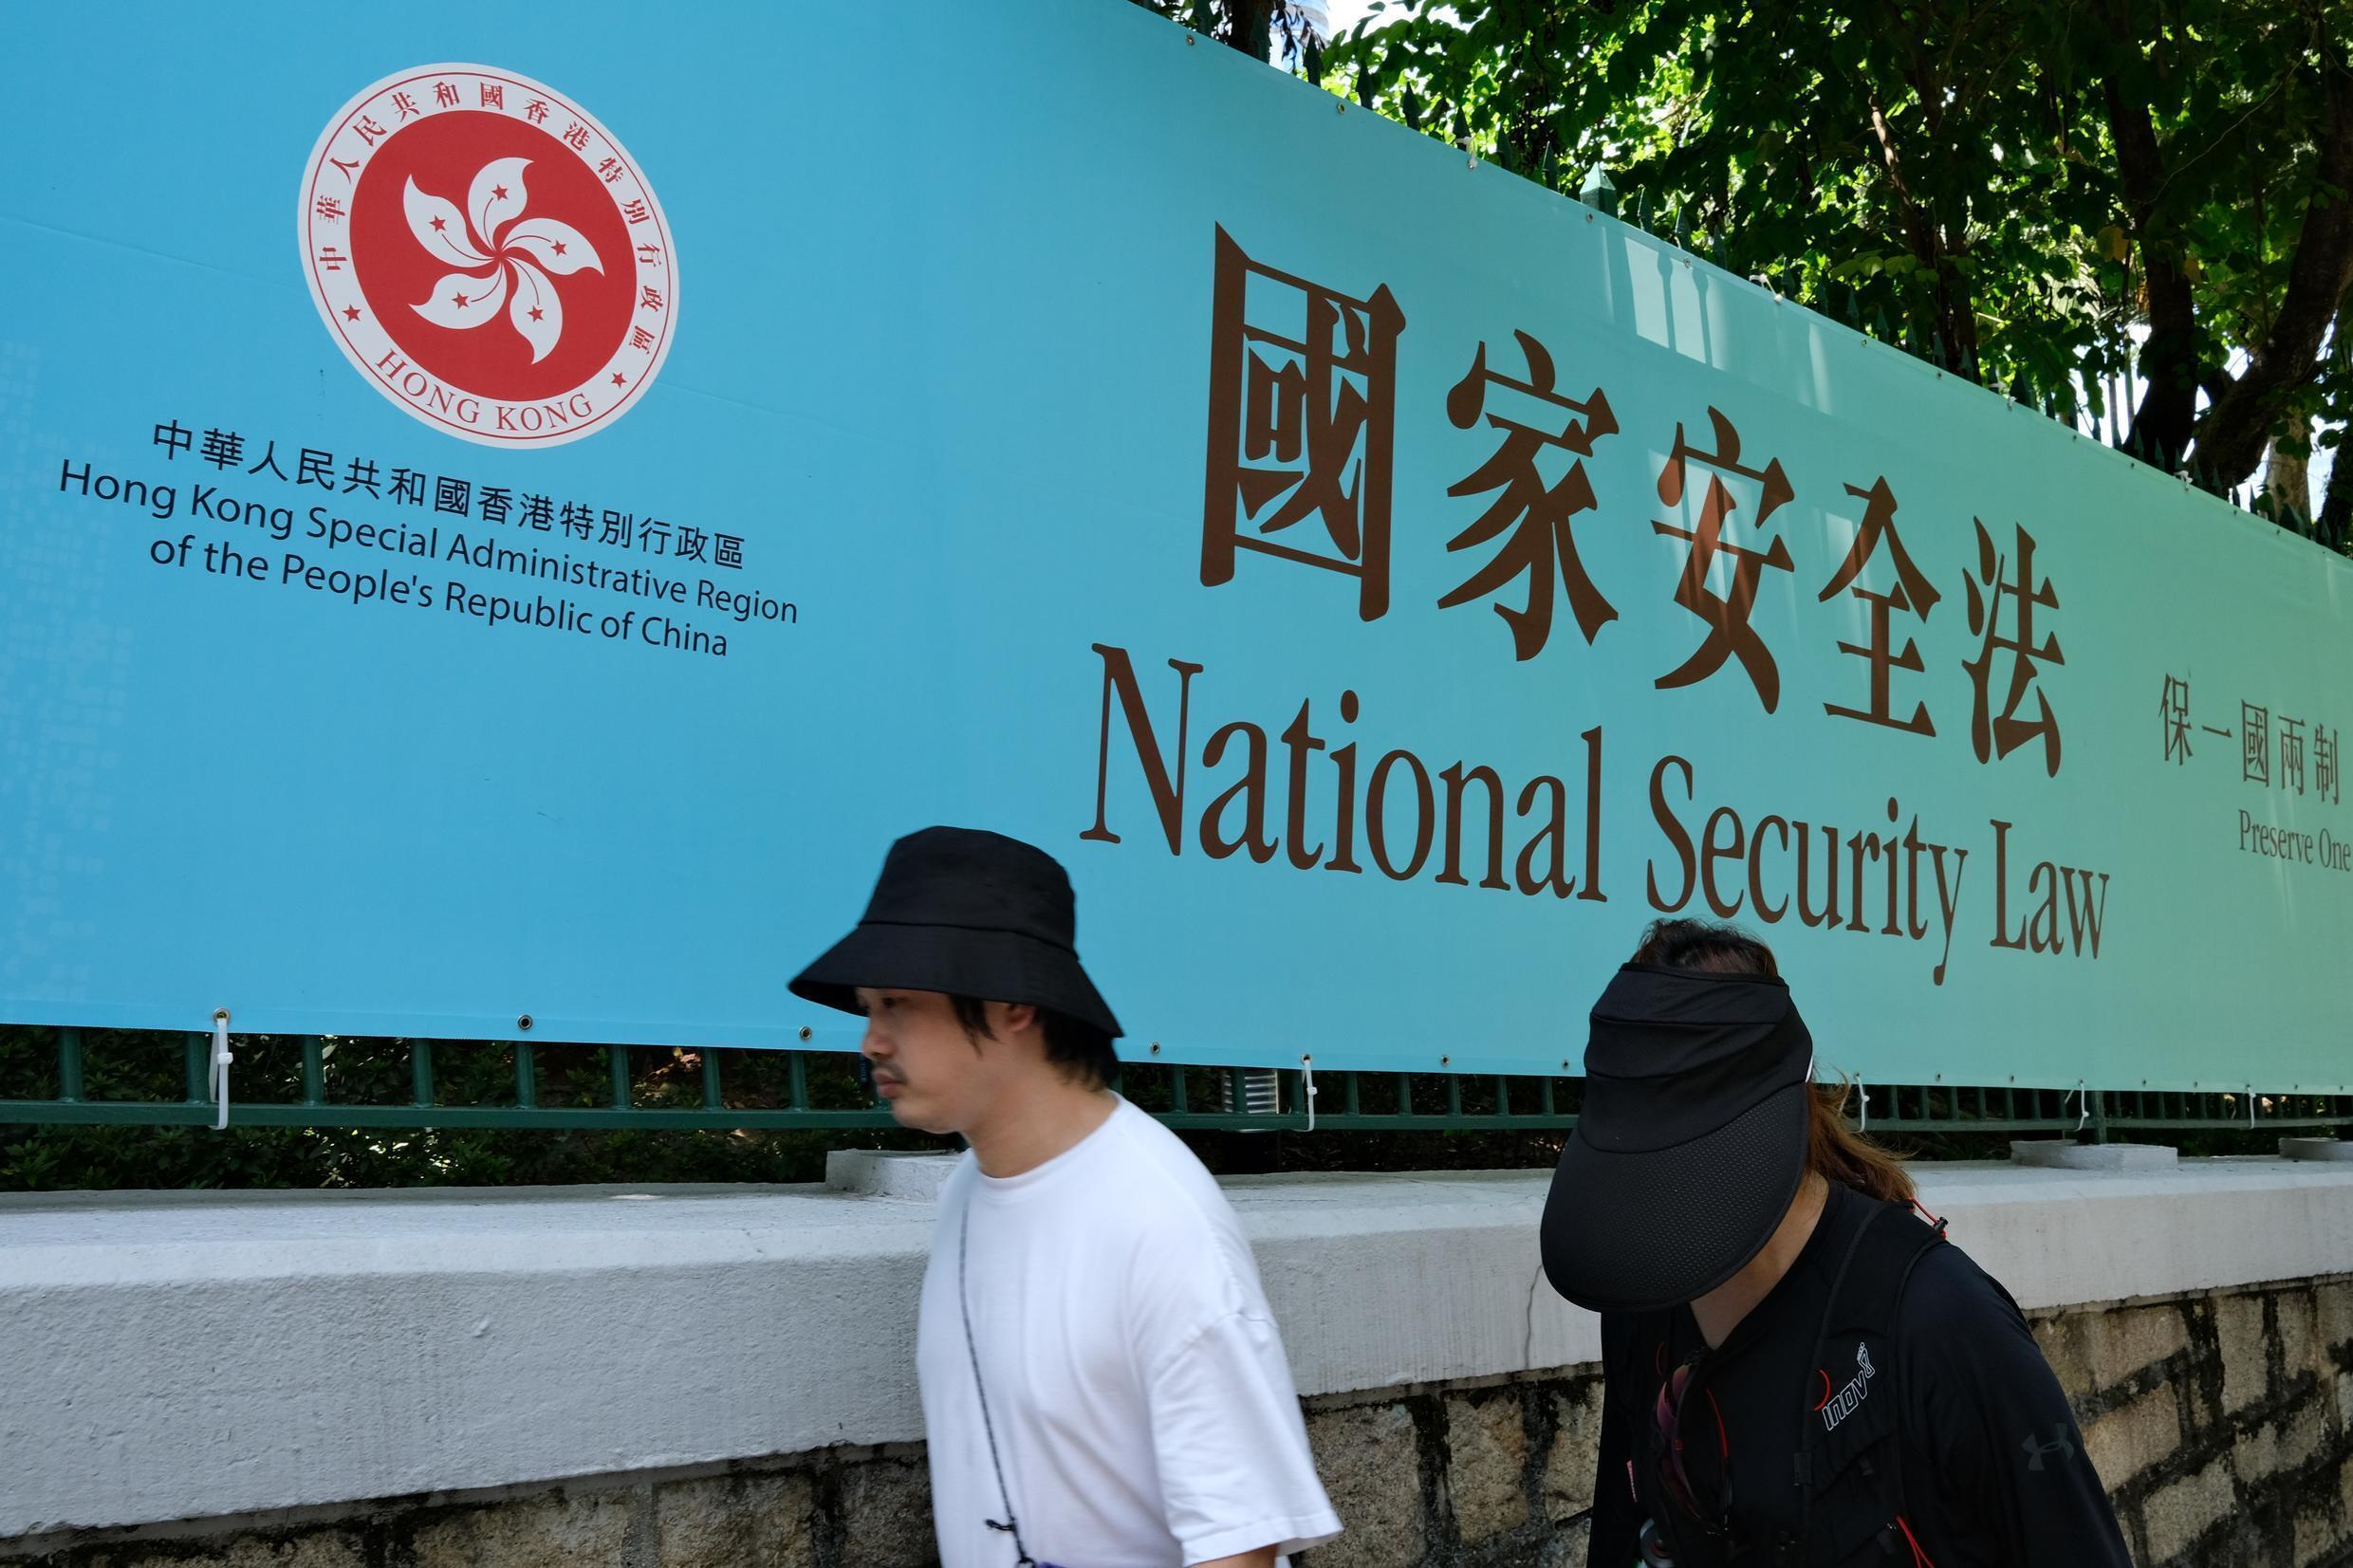 Dozens of people were arrested in a morning sweep of democracy activists in Hong Kong